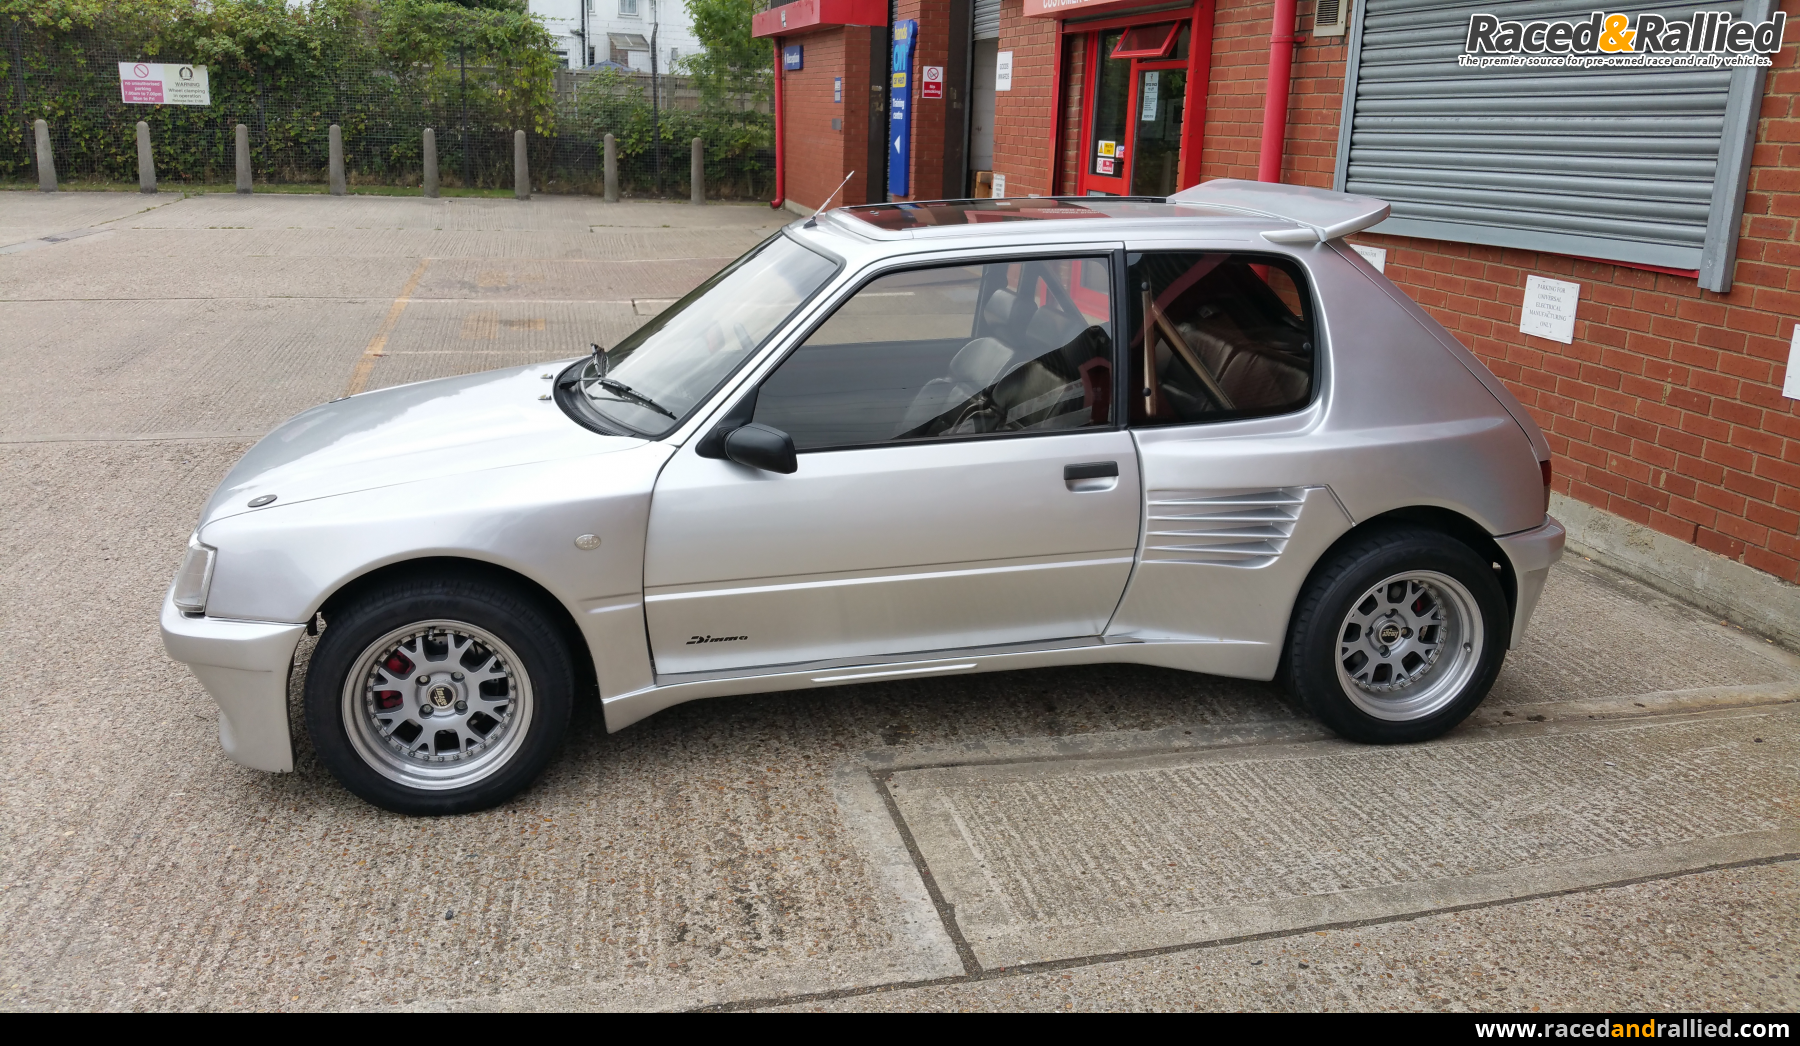 peugeot 205 gti dimma performance trackday cars for sale at raced rallied rally cars for. Black Bedroom Furniture Sets. Home Design Ideas